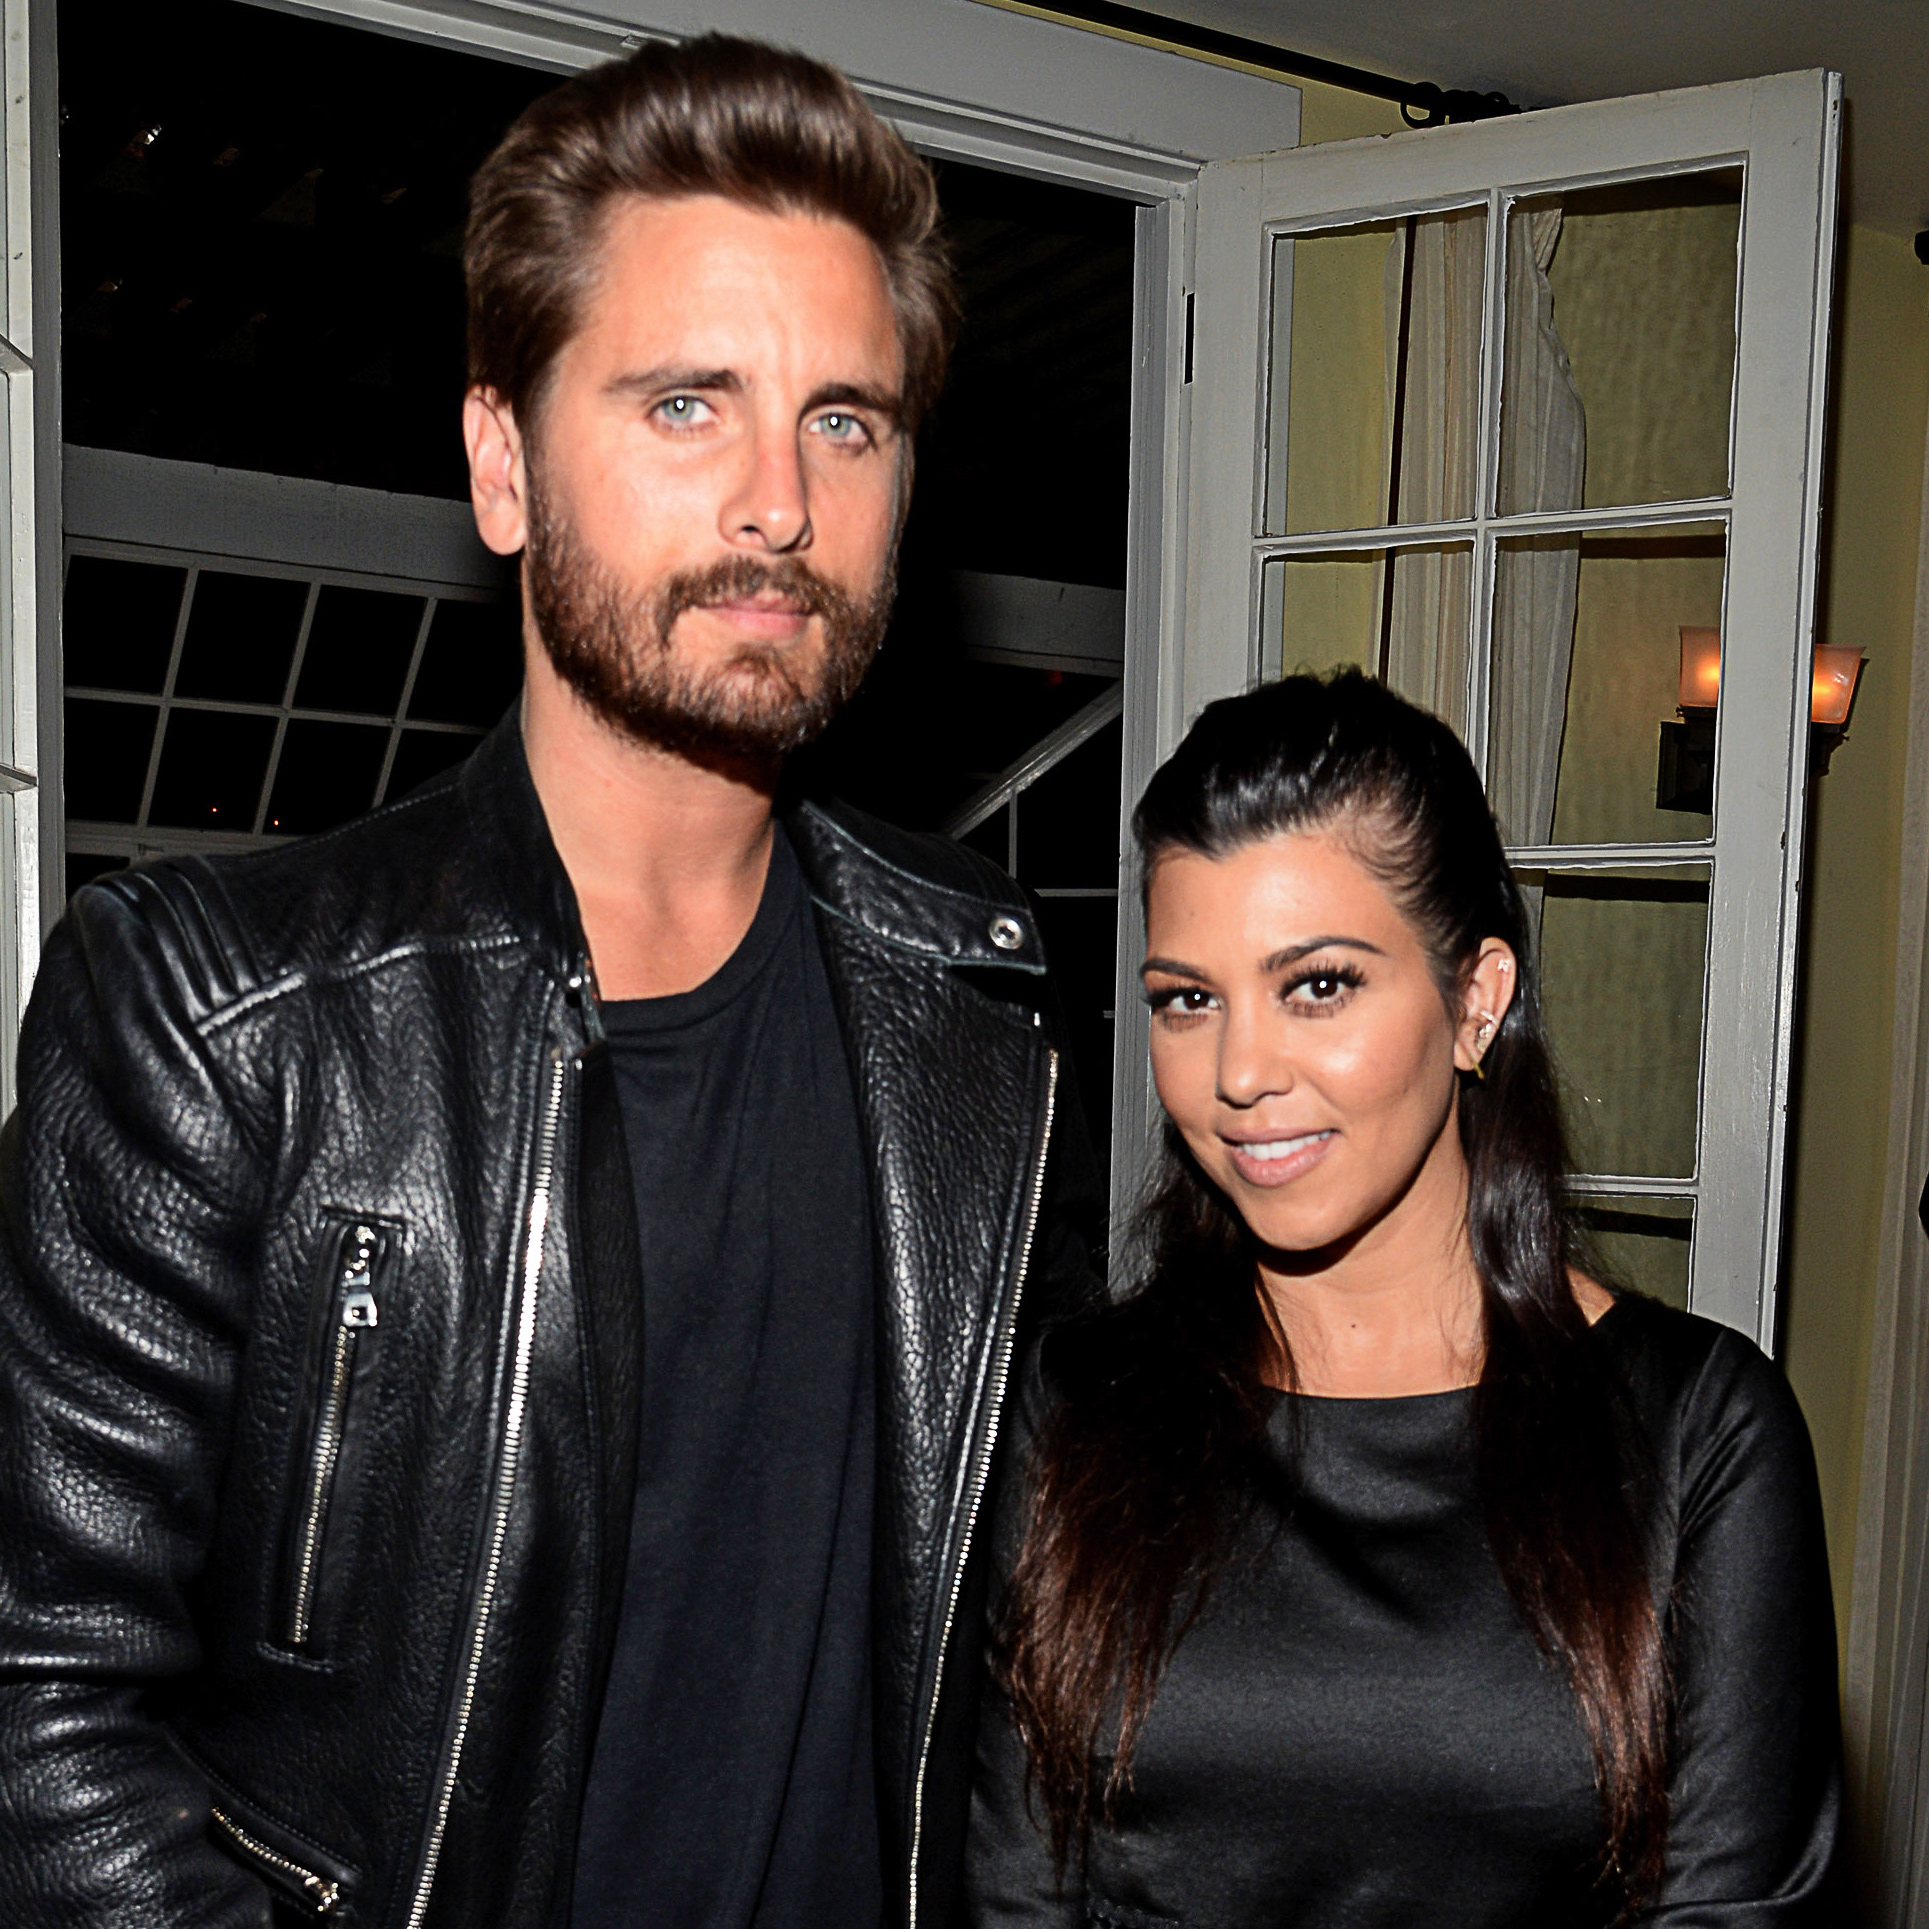 Scott Disick Is Afraid of Ex Kourtney Kardashian Moving On